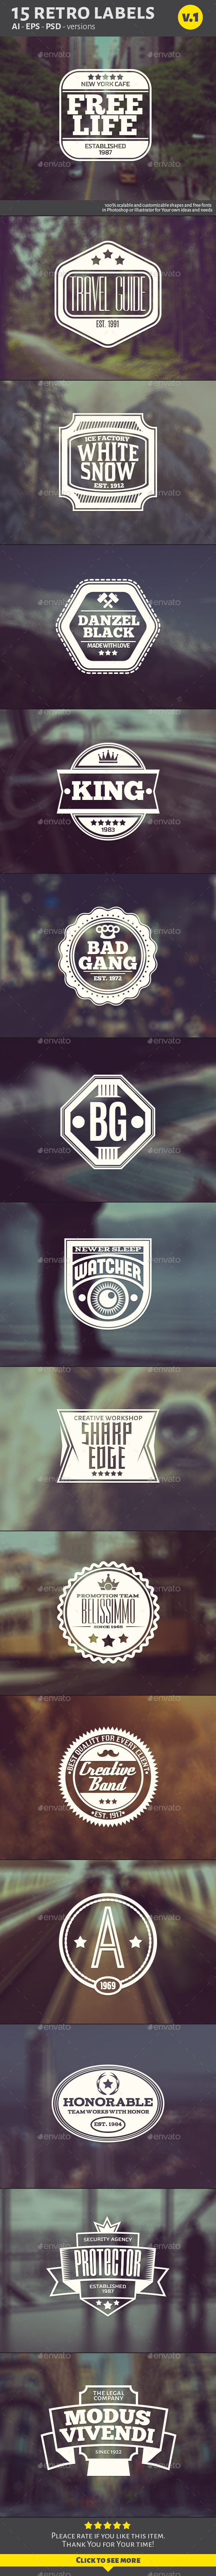 GraphicRiver 15 Retro Labels v.1 10350865